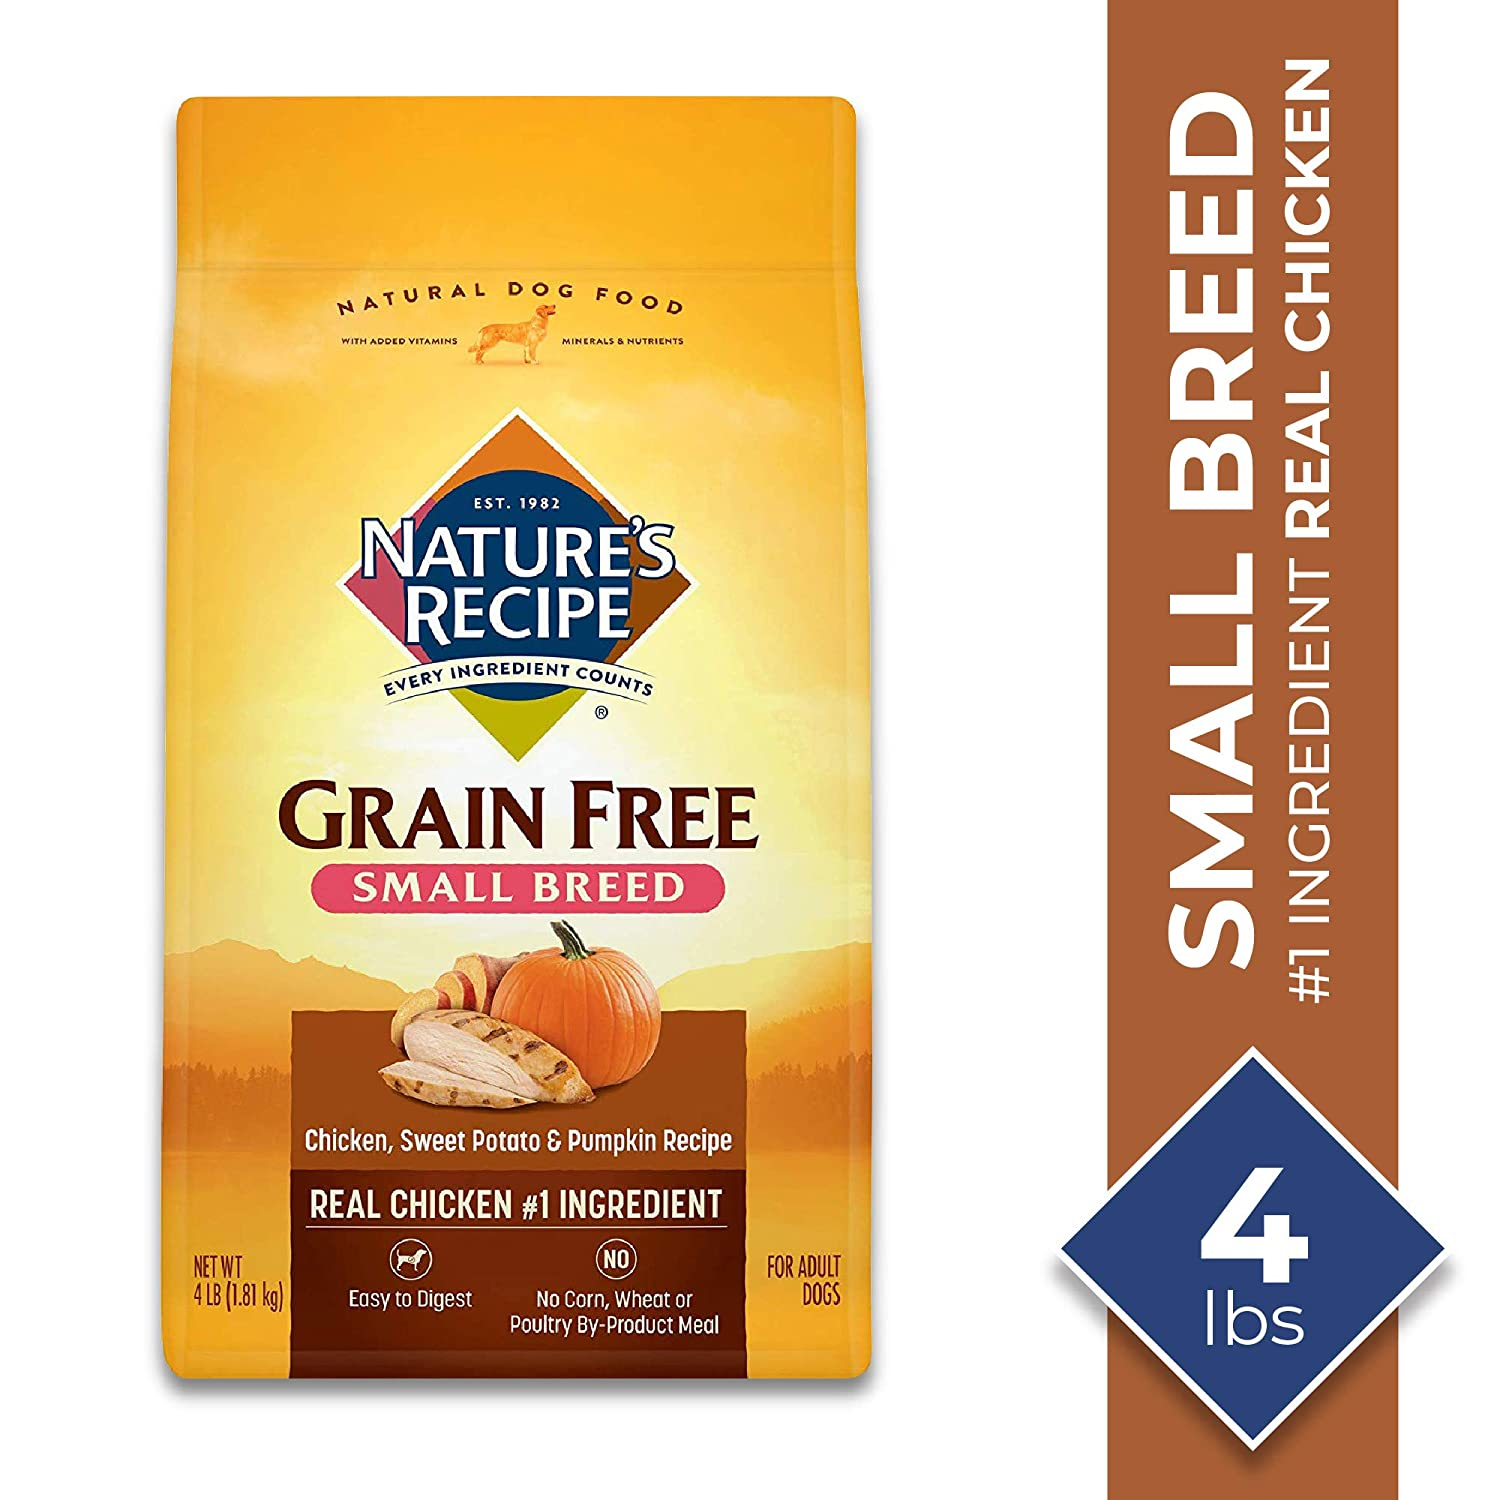 4.Nature's Recipe Small Breed Grain-Free Dry Dog Food